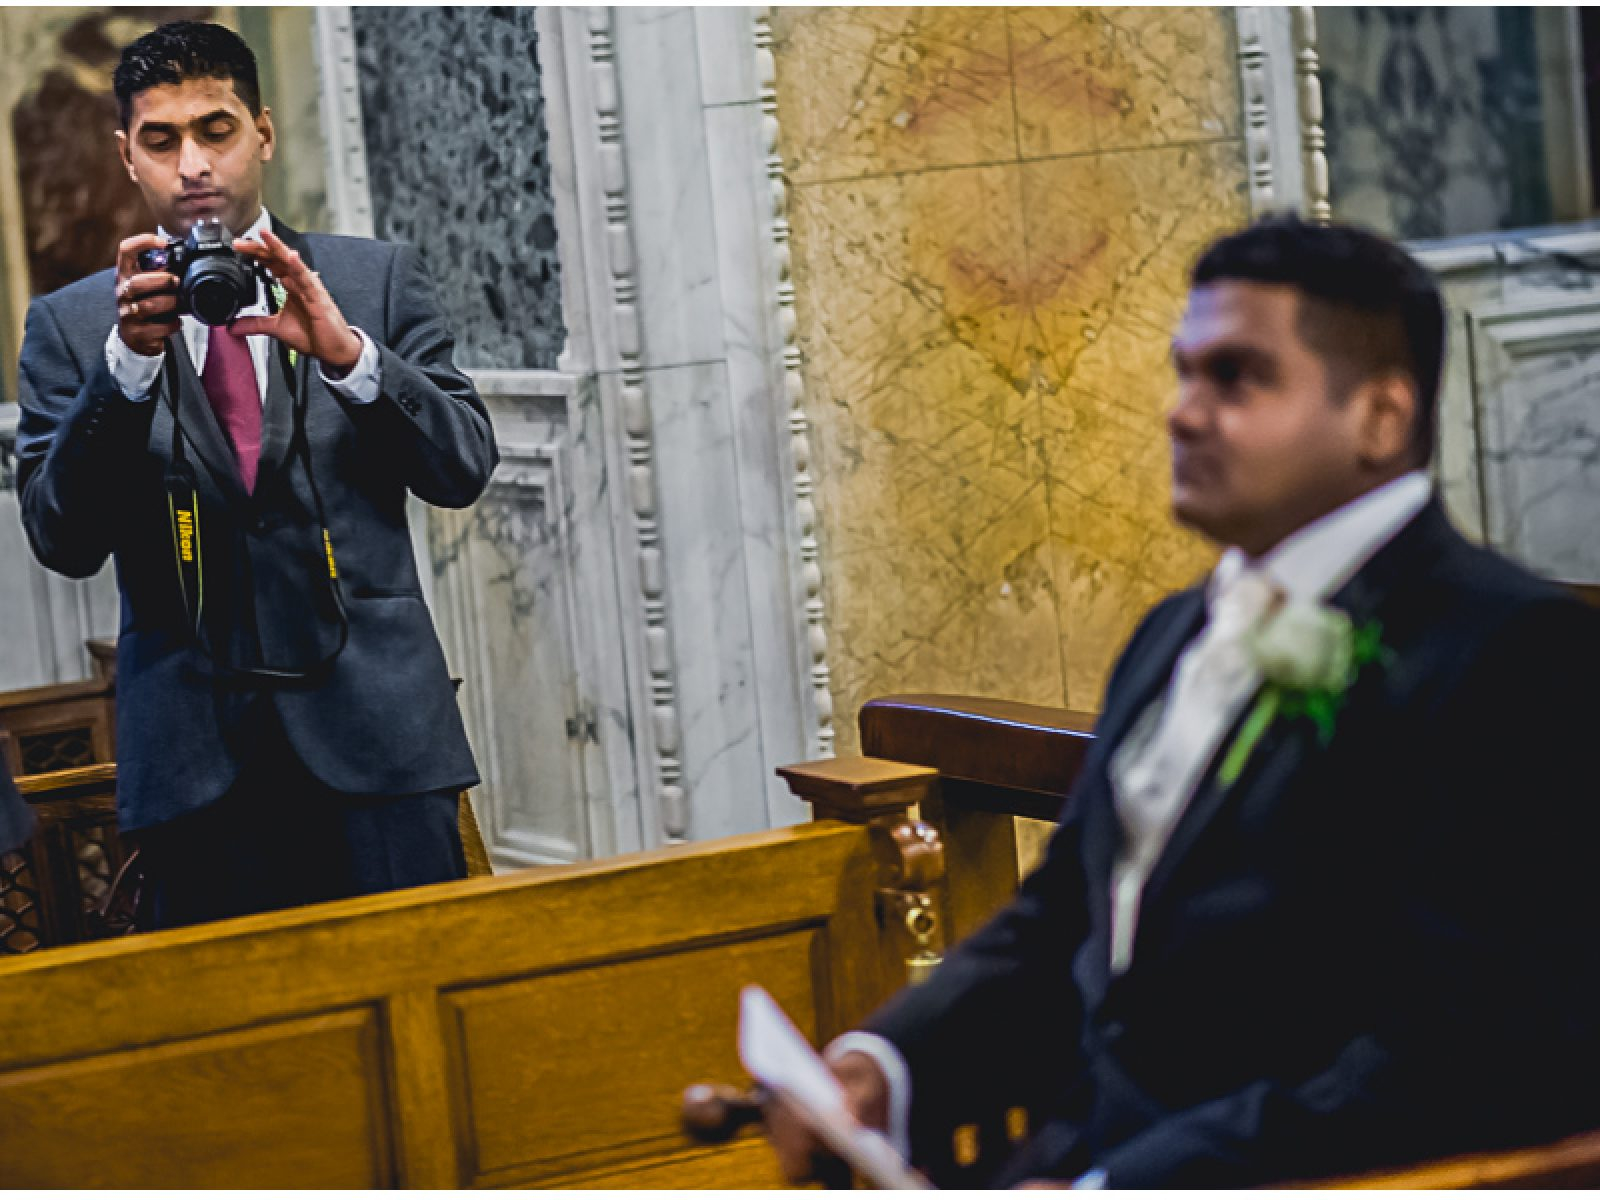 461 1600x1200 - Darshani and Anthony - wedding photographer in London